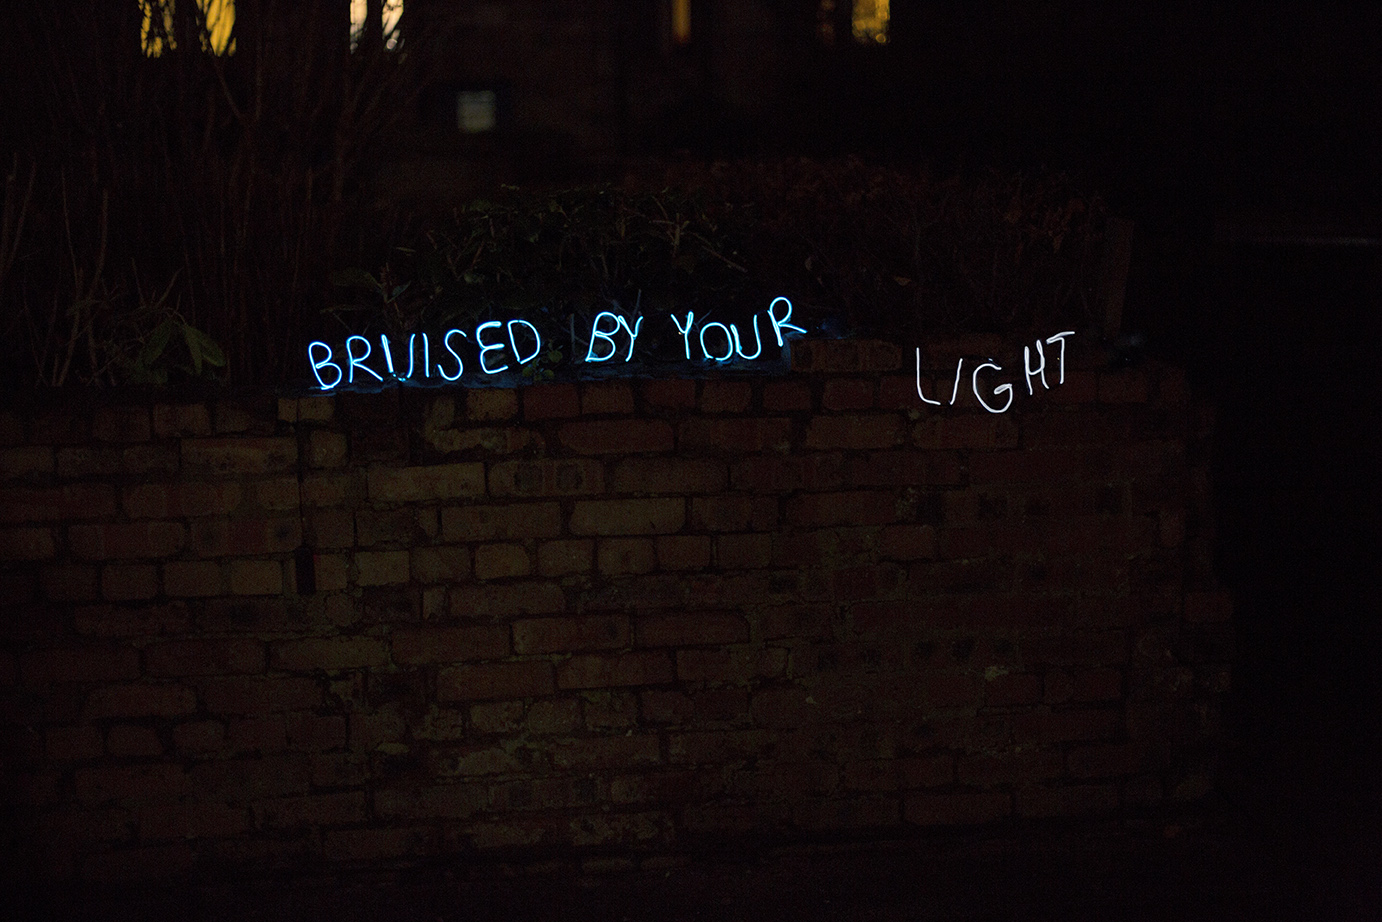 bruised by your light neon2.jpg